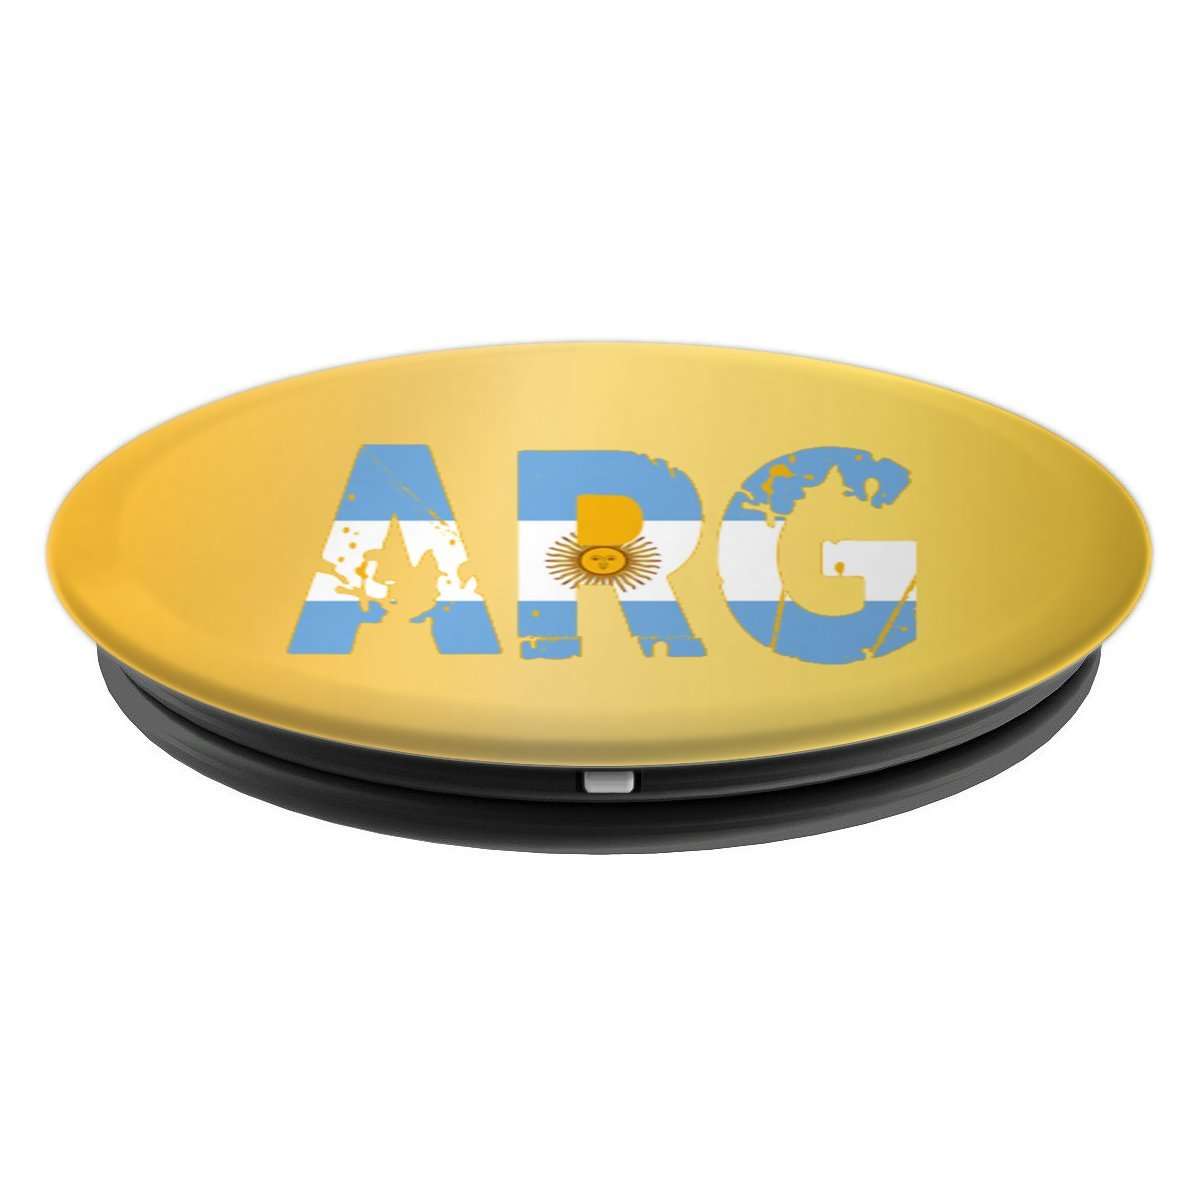 Amazon.com: Argentina Spanish Teacher Latino Hispanic ARG - PopSockets Grip and Stand for Phones and Tablets: Cell Phones & Accessories